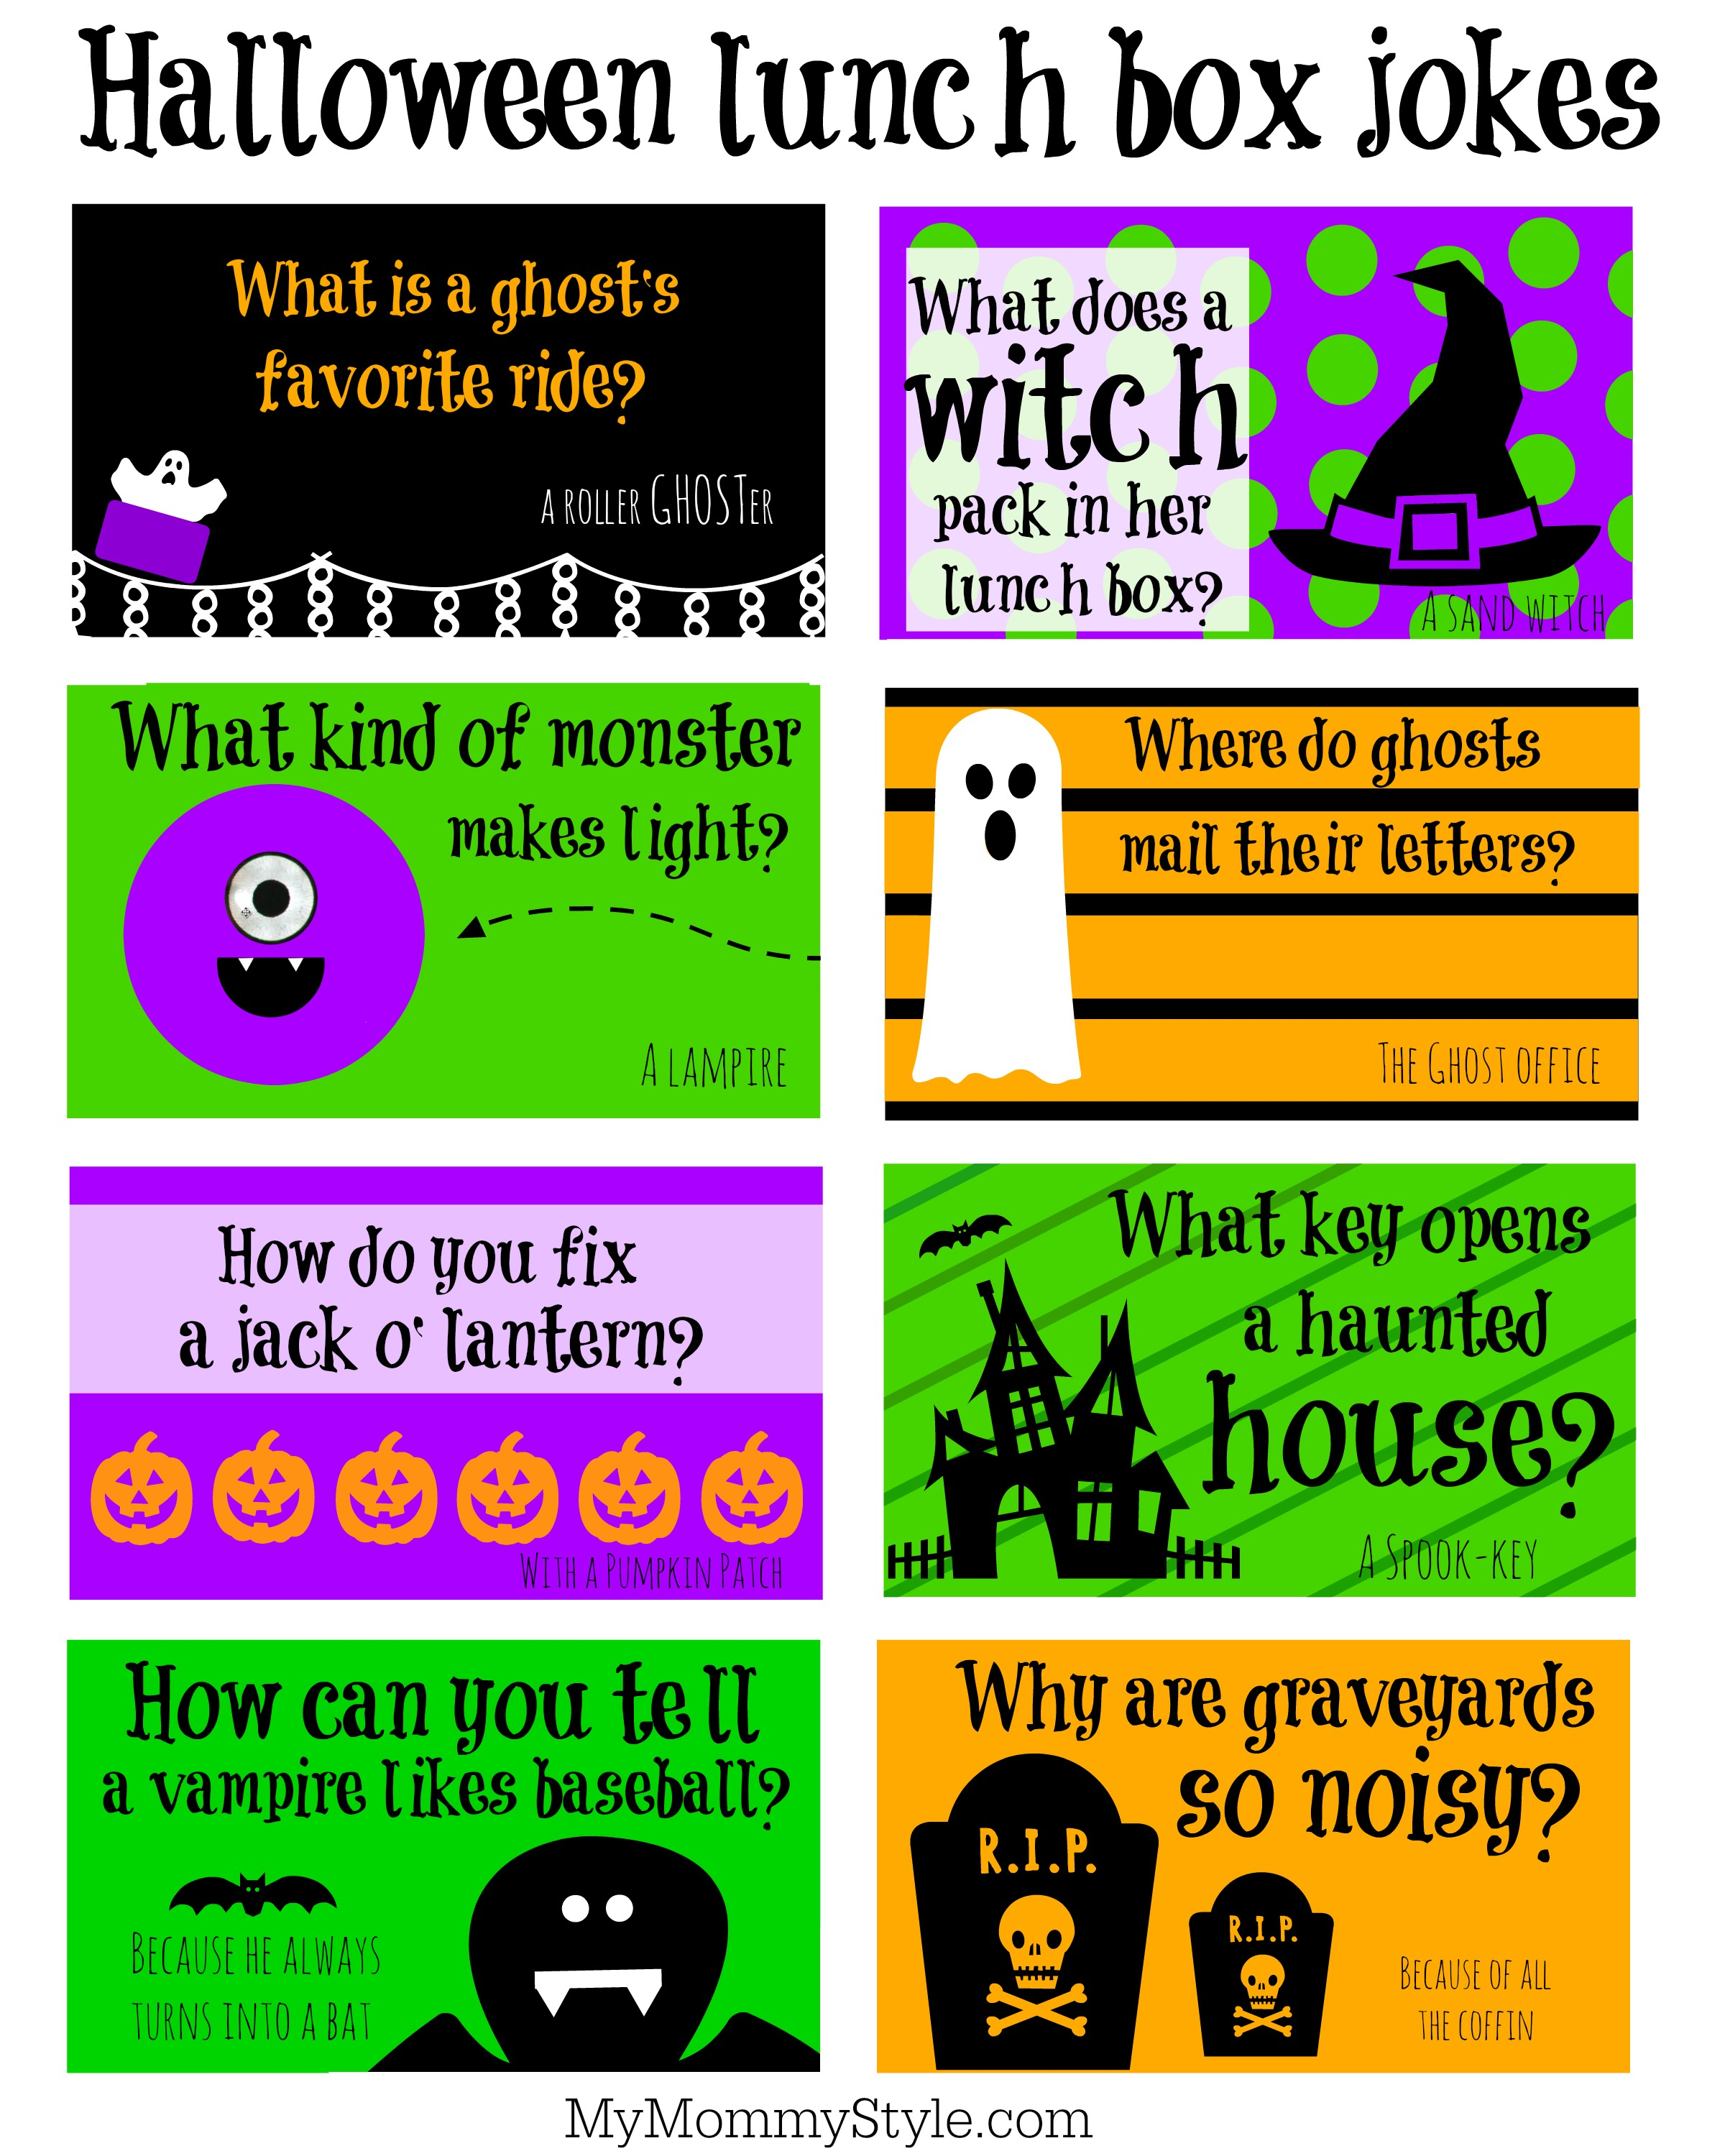 Halloween Lunchbox Jokes - My Mommy Style - Free Printable Jokes For Adults